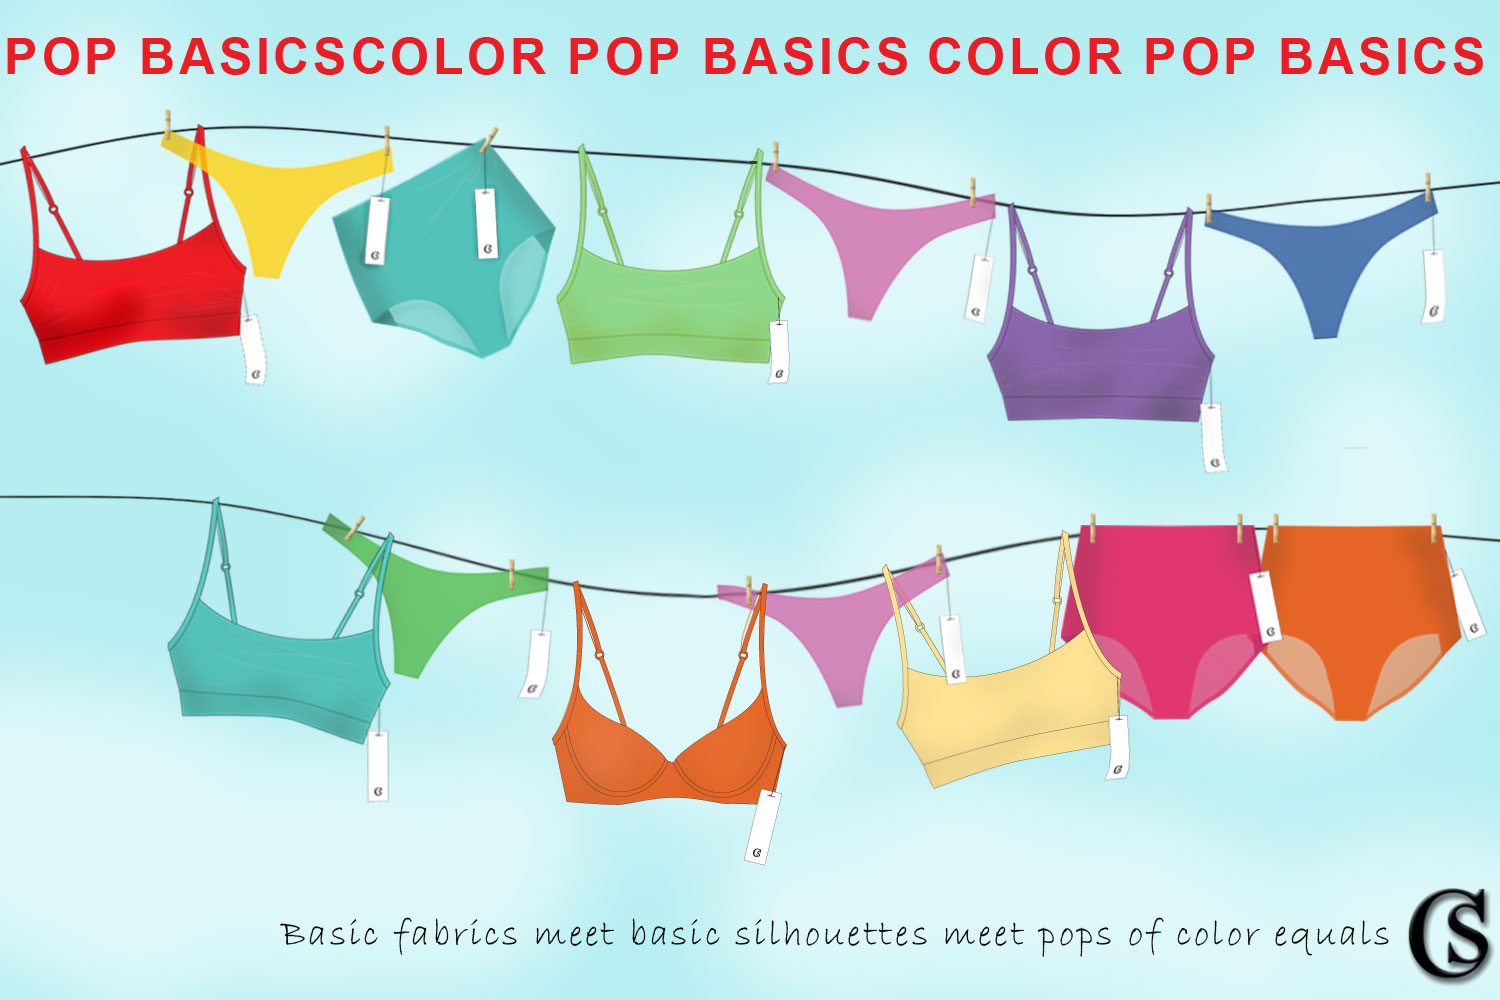 Color up your brand basics for 2021 summer lingerie trends